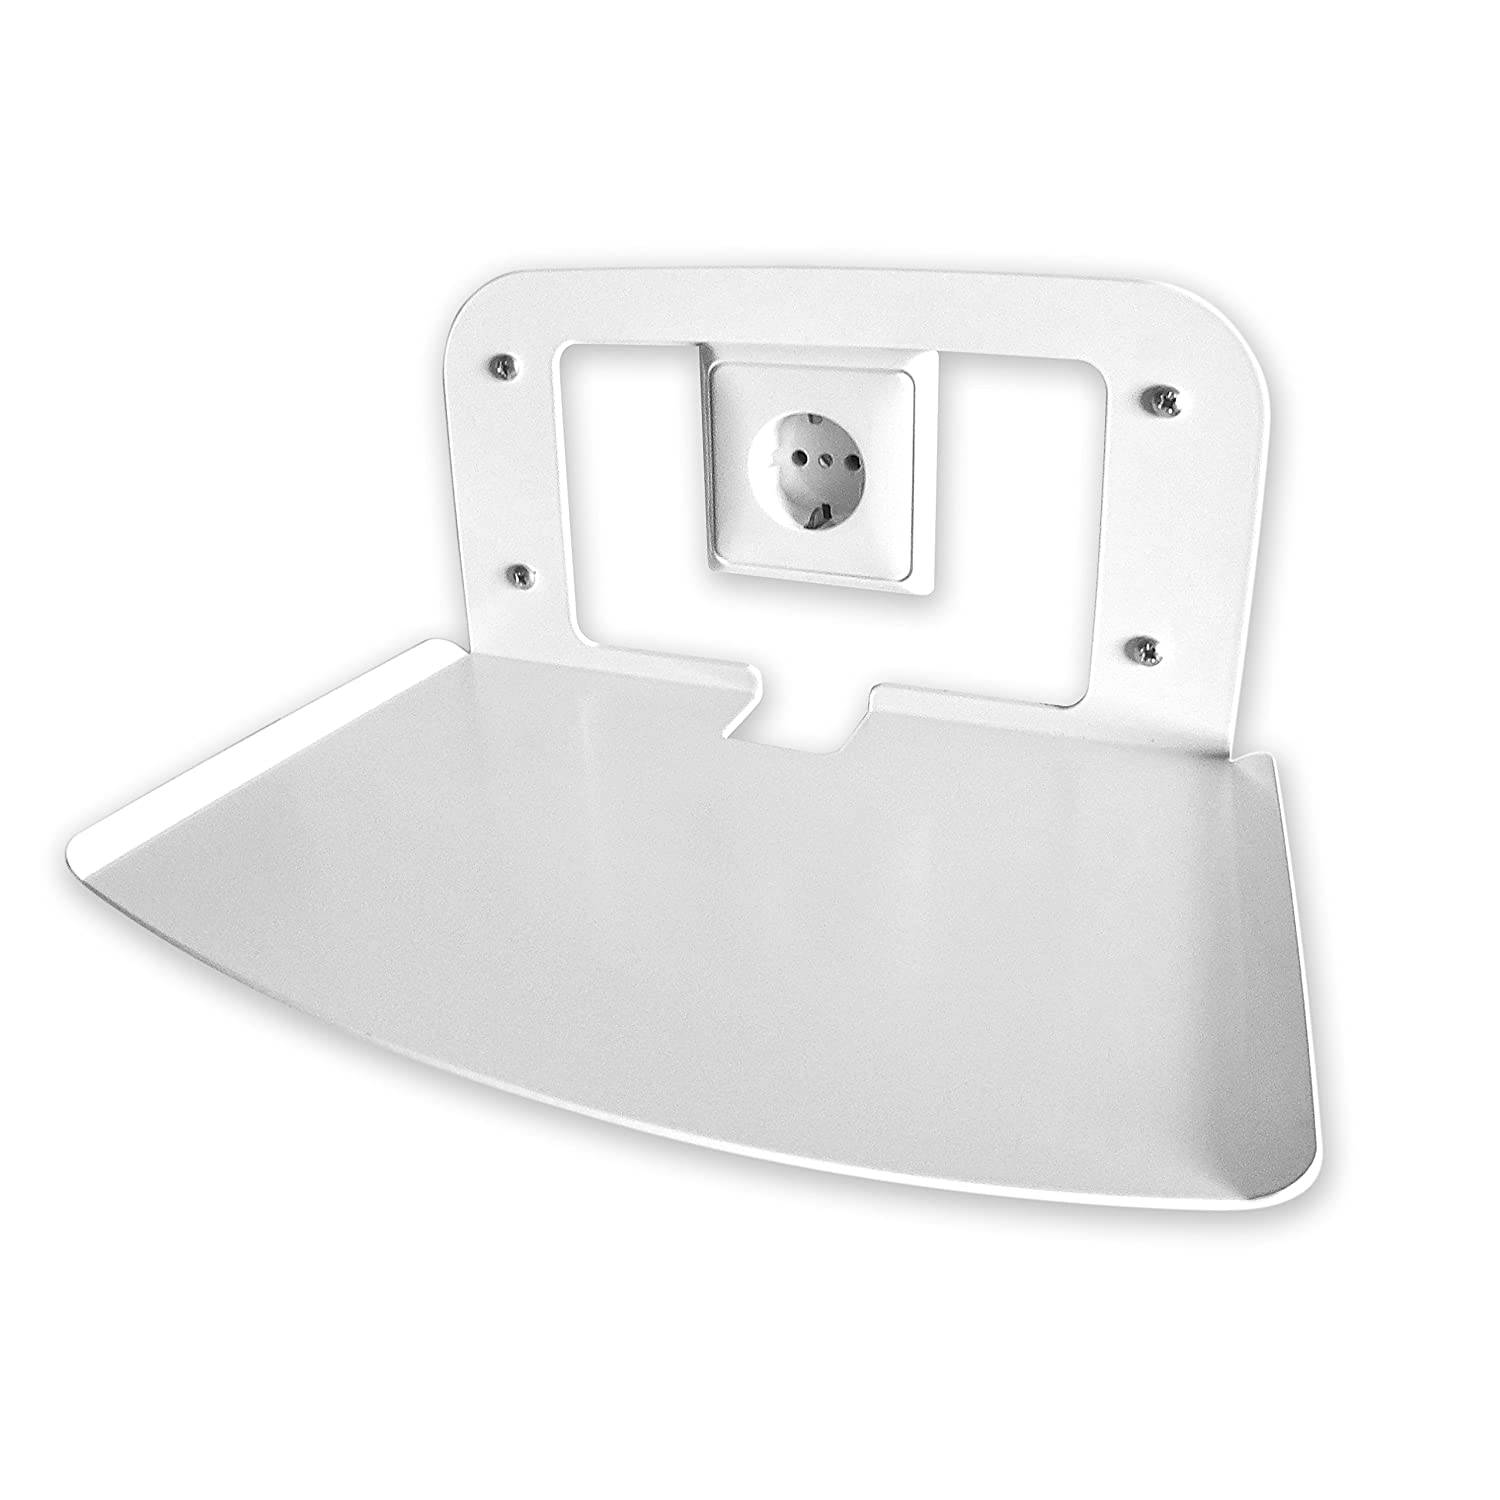 Wall Bracket for Sonos Play 5/Starr Generation 2